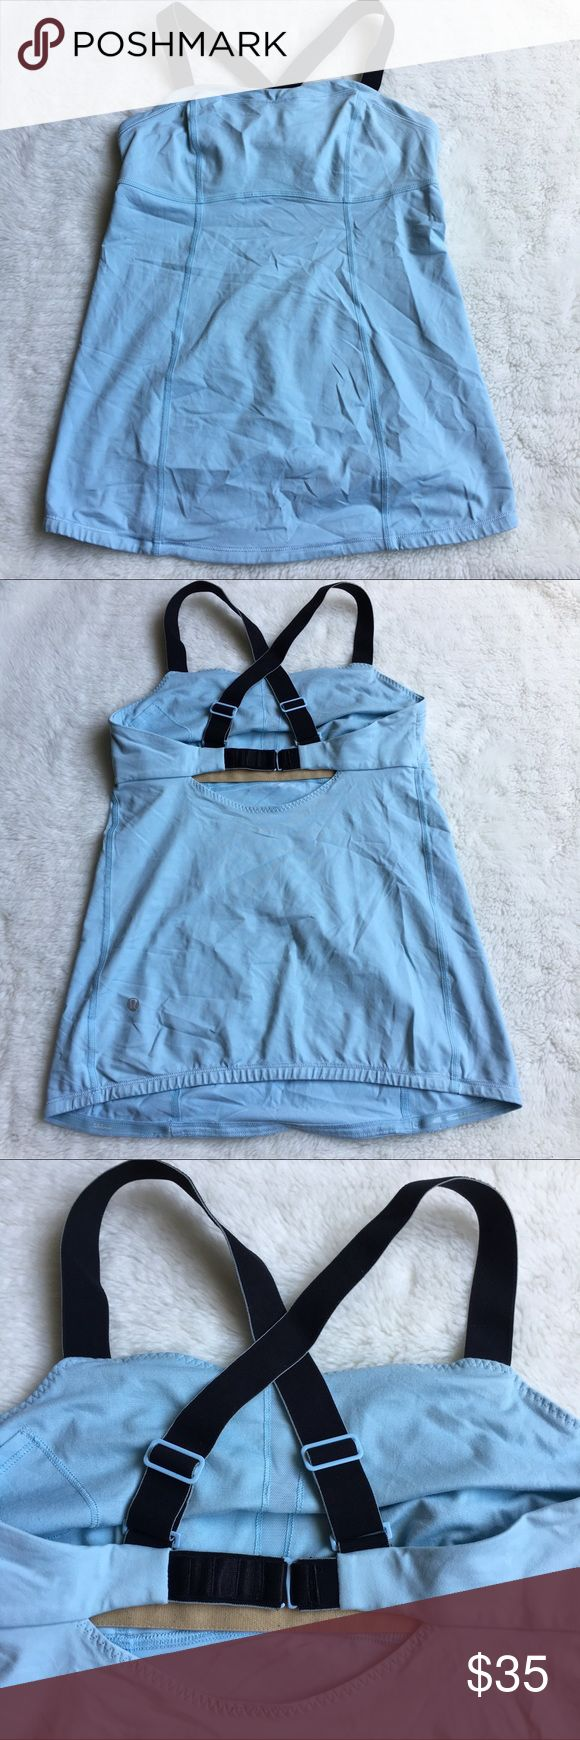 Lululemon Light Blue and Black Crossed Back Top 6 Preowned lightly worn Lululemon Light blue Crossed Back Top size 6. Has builtin bra. No pads. Adjustable straps.  Please look at pictures for better reference. Happy shopping! lululemon athletica Tops Tank Tops